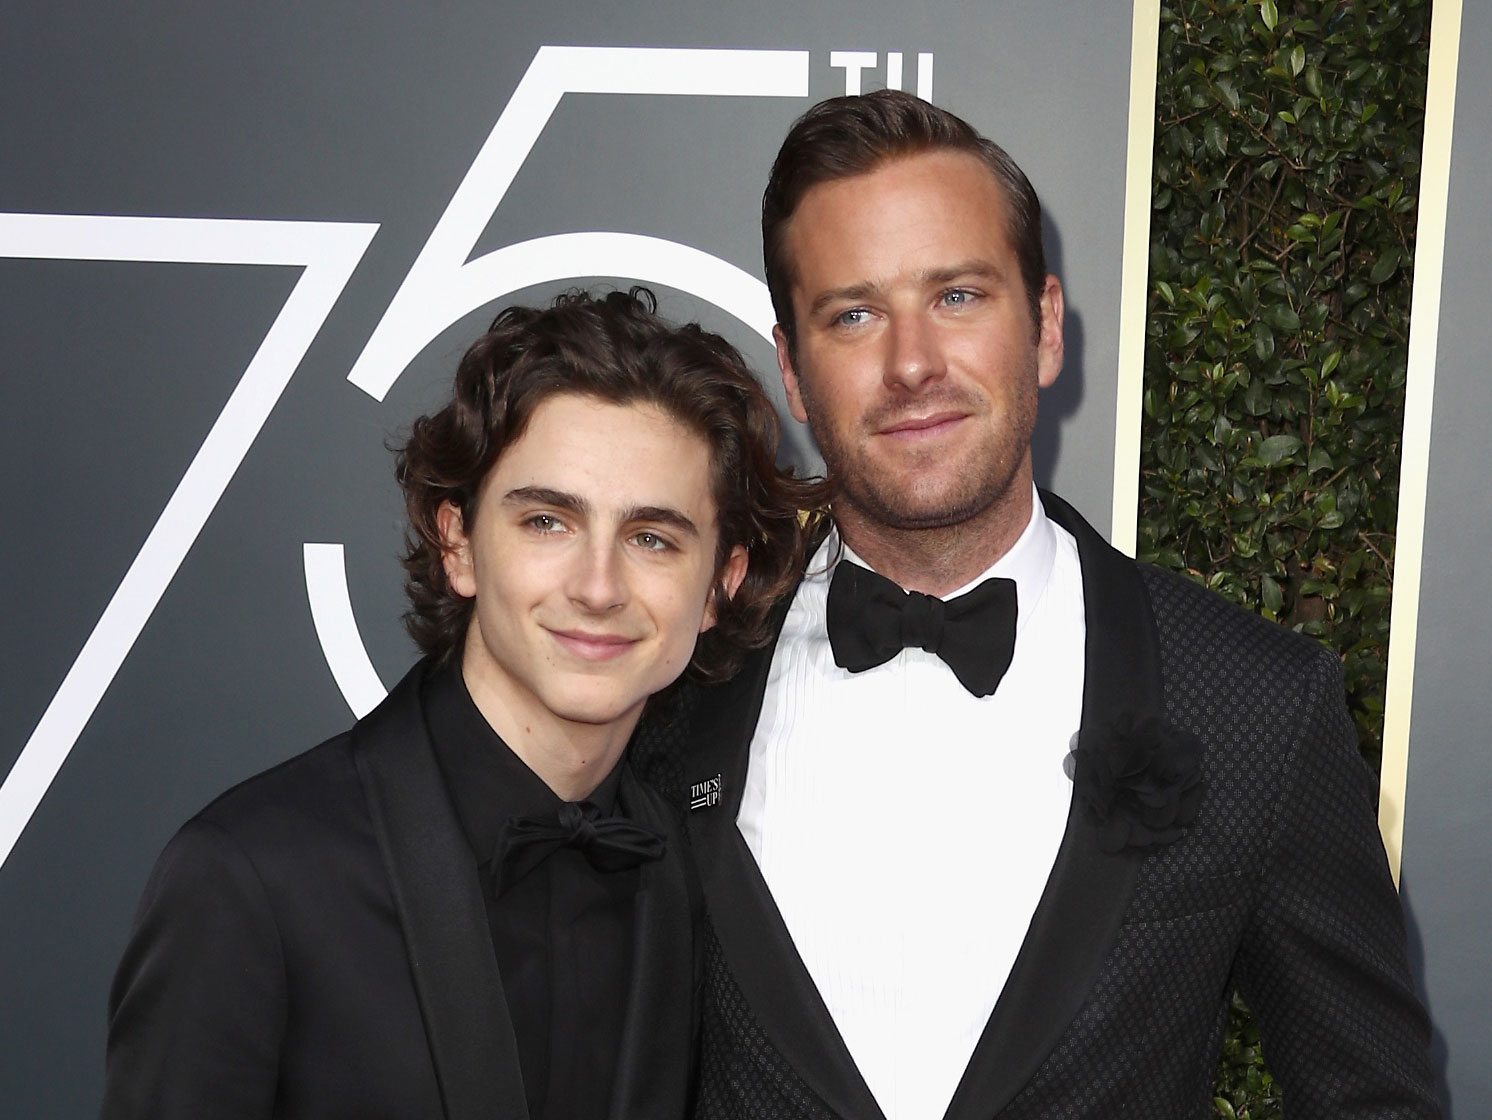 Timothee Chalamet and Armie Hammer attends The 75th Annual Golden Globe Awards at The Beverly Hilton Hotel on January 7, 2018 in Beverly Hills, California.